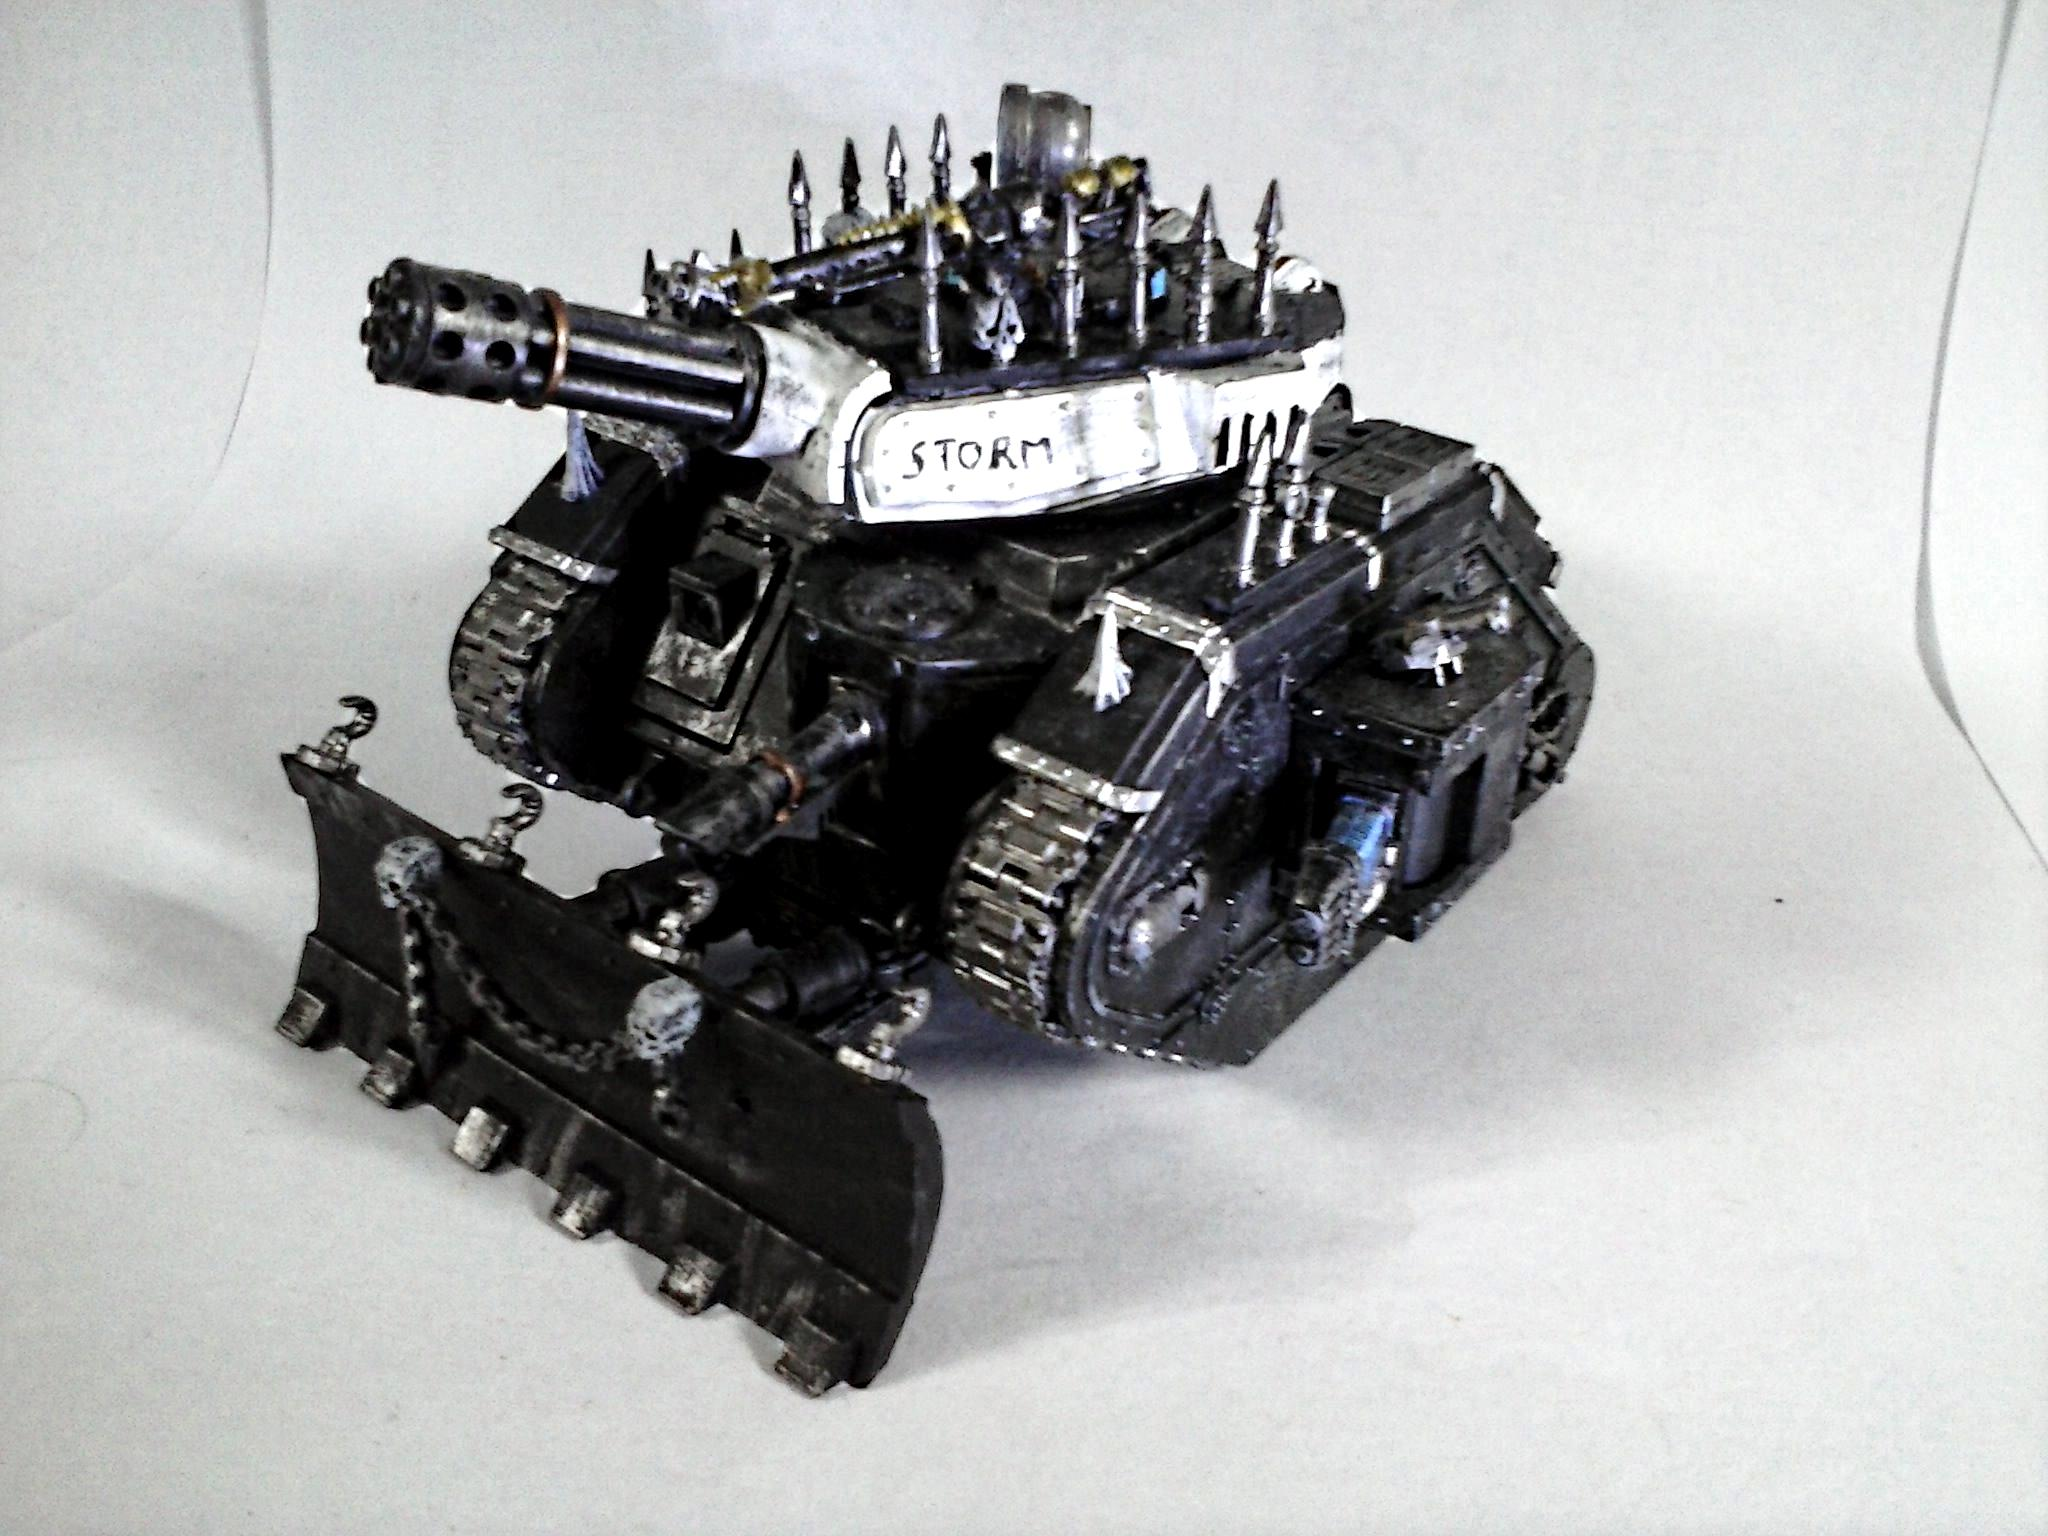 Artillery, Assault Cannon, Basilisk, Black, Blast Master, Chaos, Conversion, Crusade, Doom Siren, Earthshaker, Havocs, Heavy Bolter, Lascannon, Legion, Leman Russ, Lightening Claws, Looted, Missile Launcher, Noise, Pirate, Pirates, Plasma Cannon, Punisher, Silver, Sonic Blaster, Space, Space Marines, Spiky, Stolen., Talons, Tank, Warband, Warp, Weathered